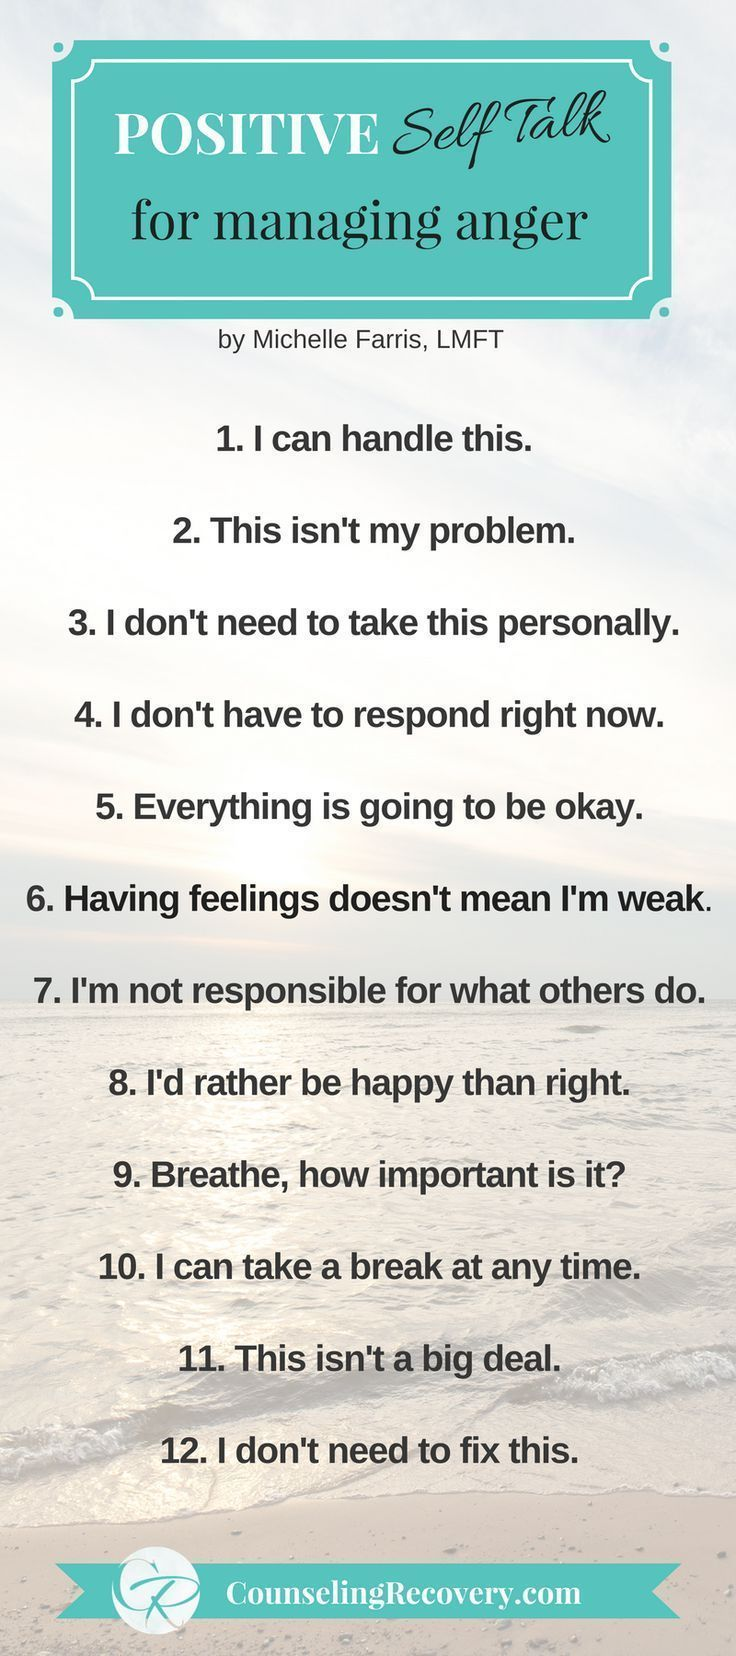 The Rules Of Taking An Effective Time Out Counseling Recovery Michelle Farris Lmft Anger Management Quotes Healthy Anger Relationship Problems Anger